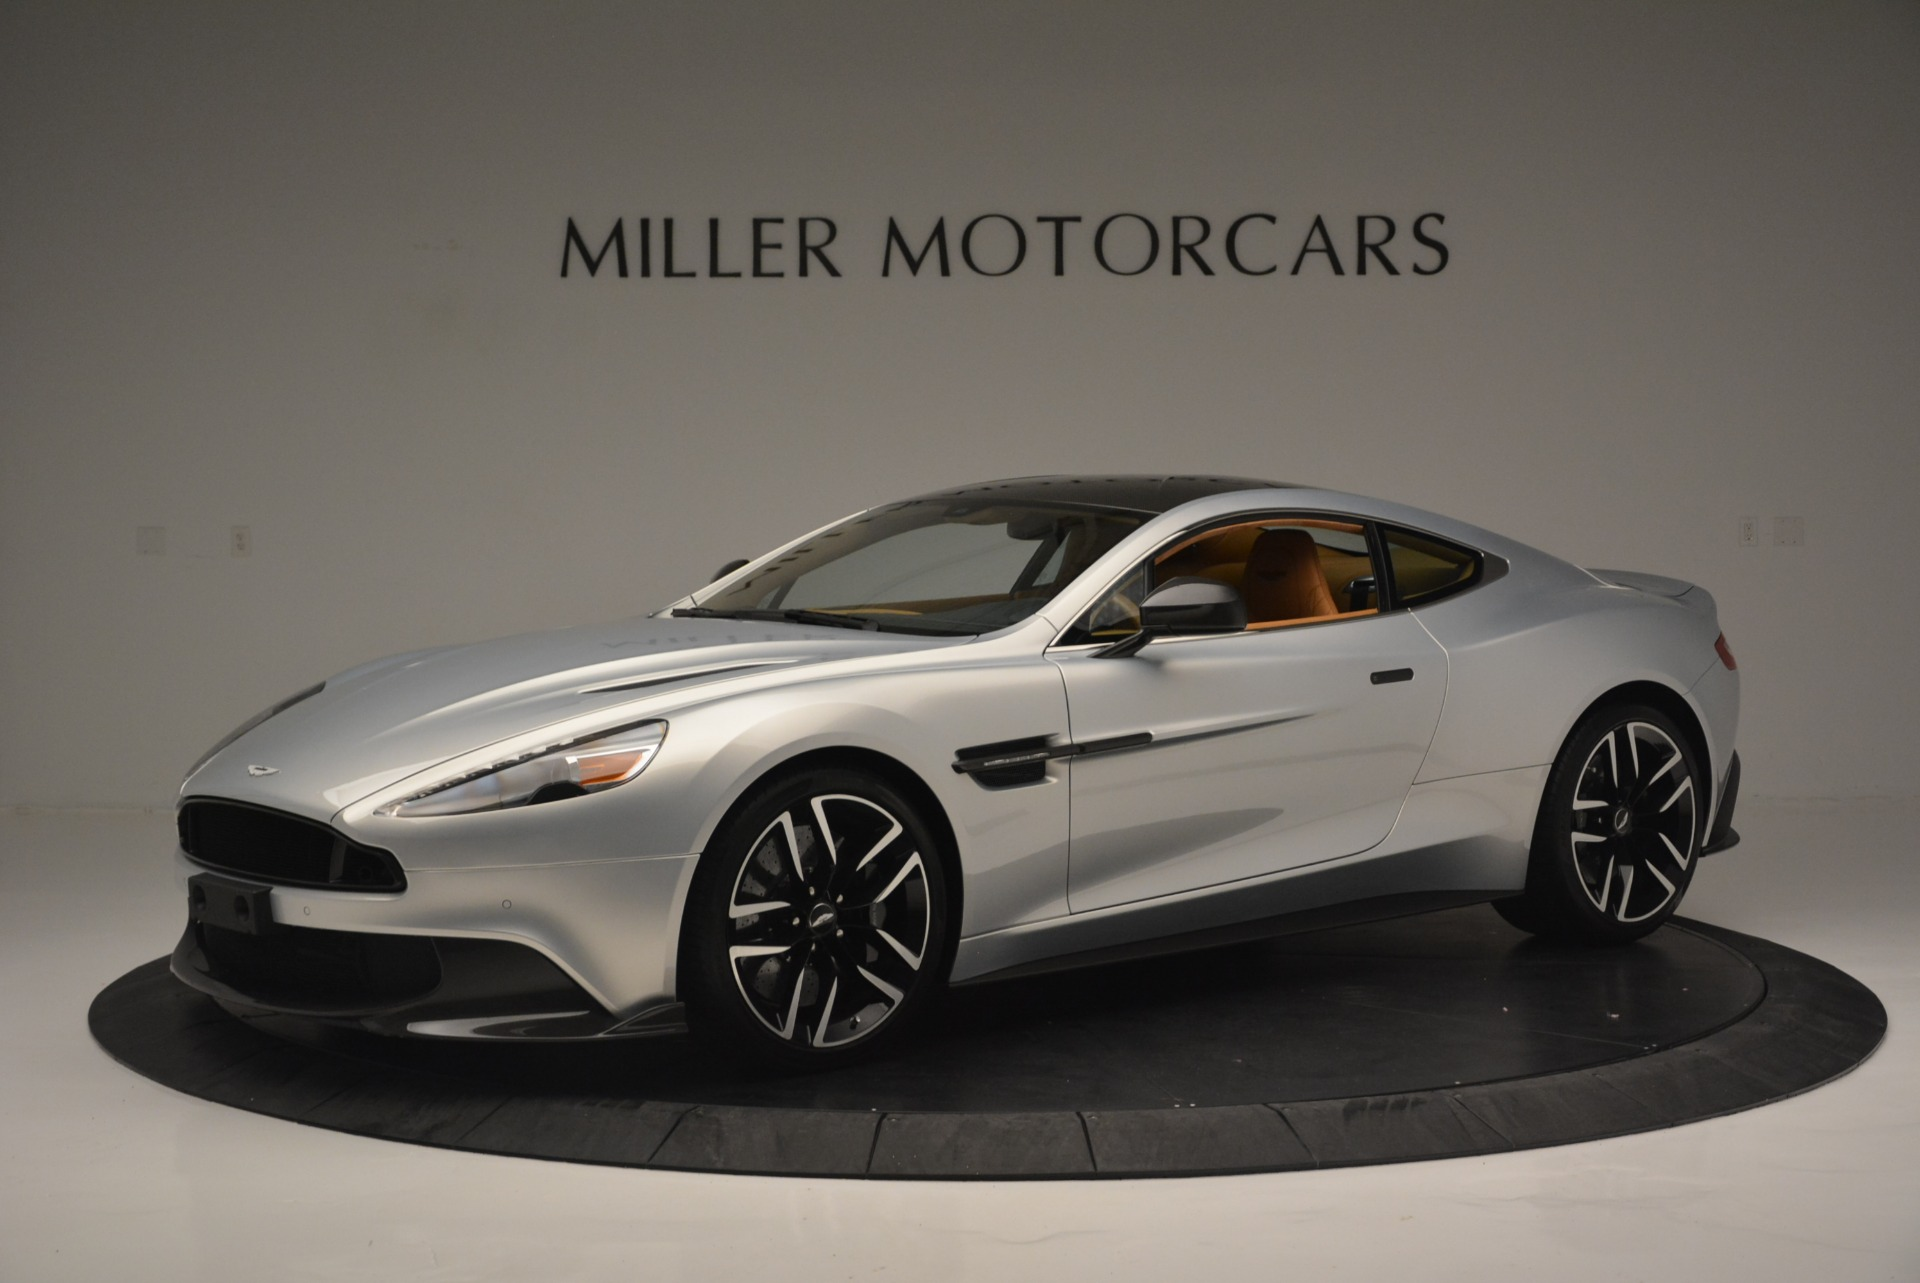 Used 2018 Aston Martin Vanquish S Coupe for sale Sold at Pagani of Greenwich in Greenwich CT 06830 1